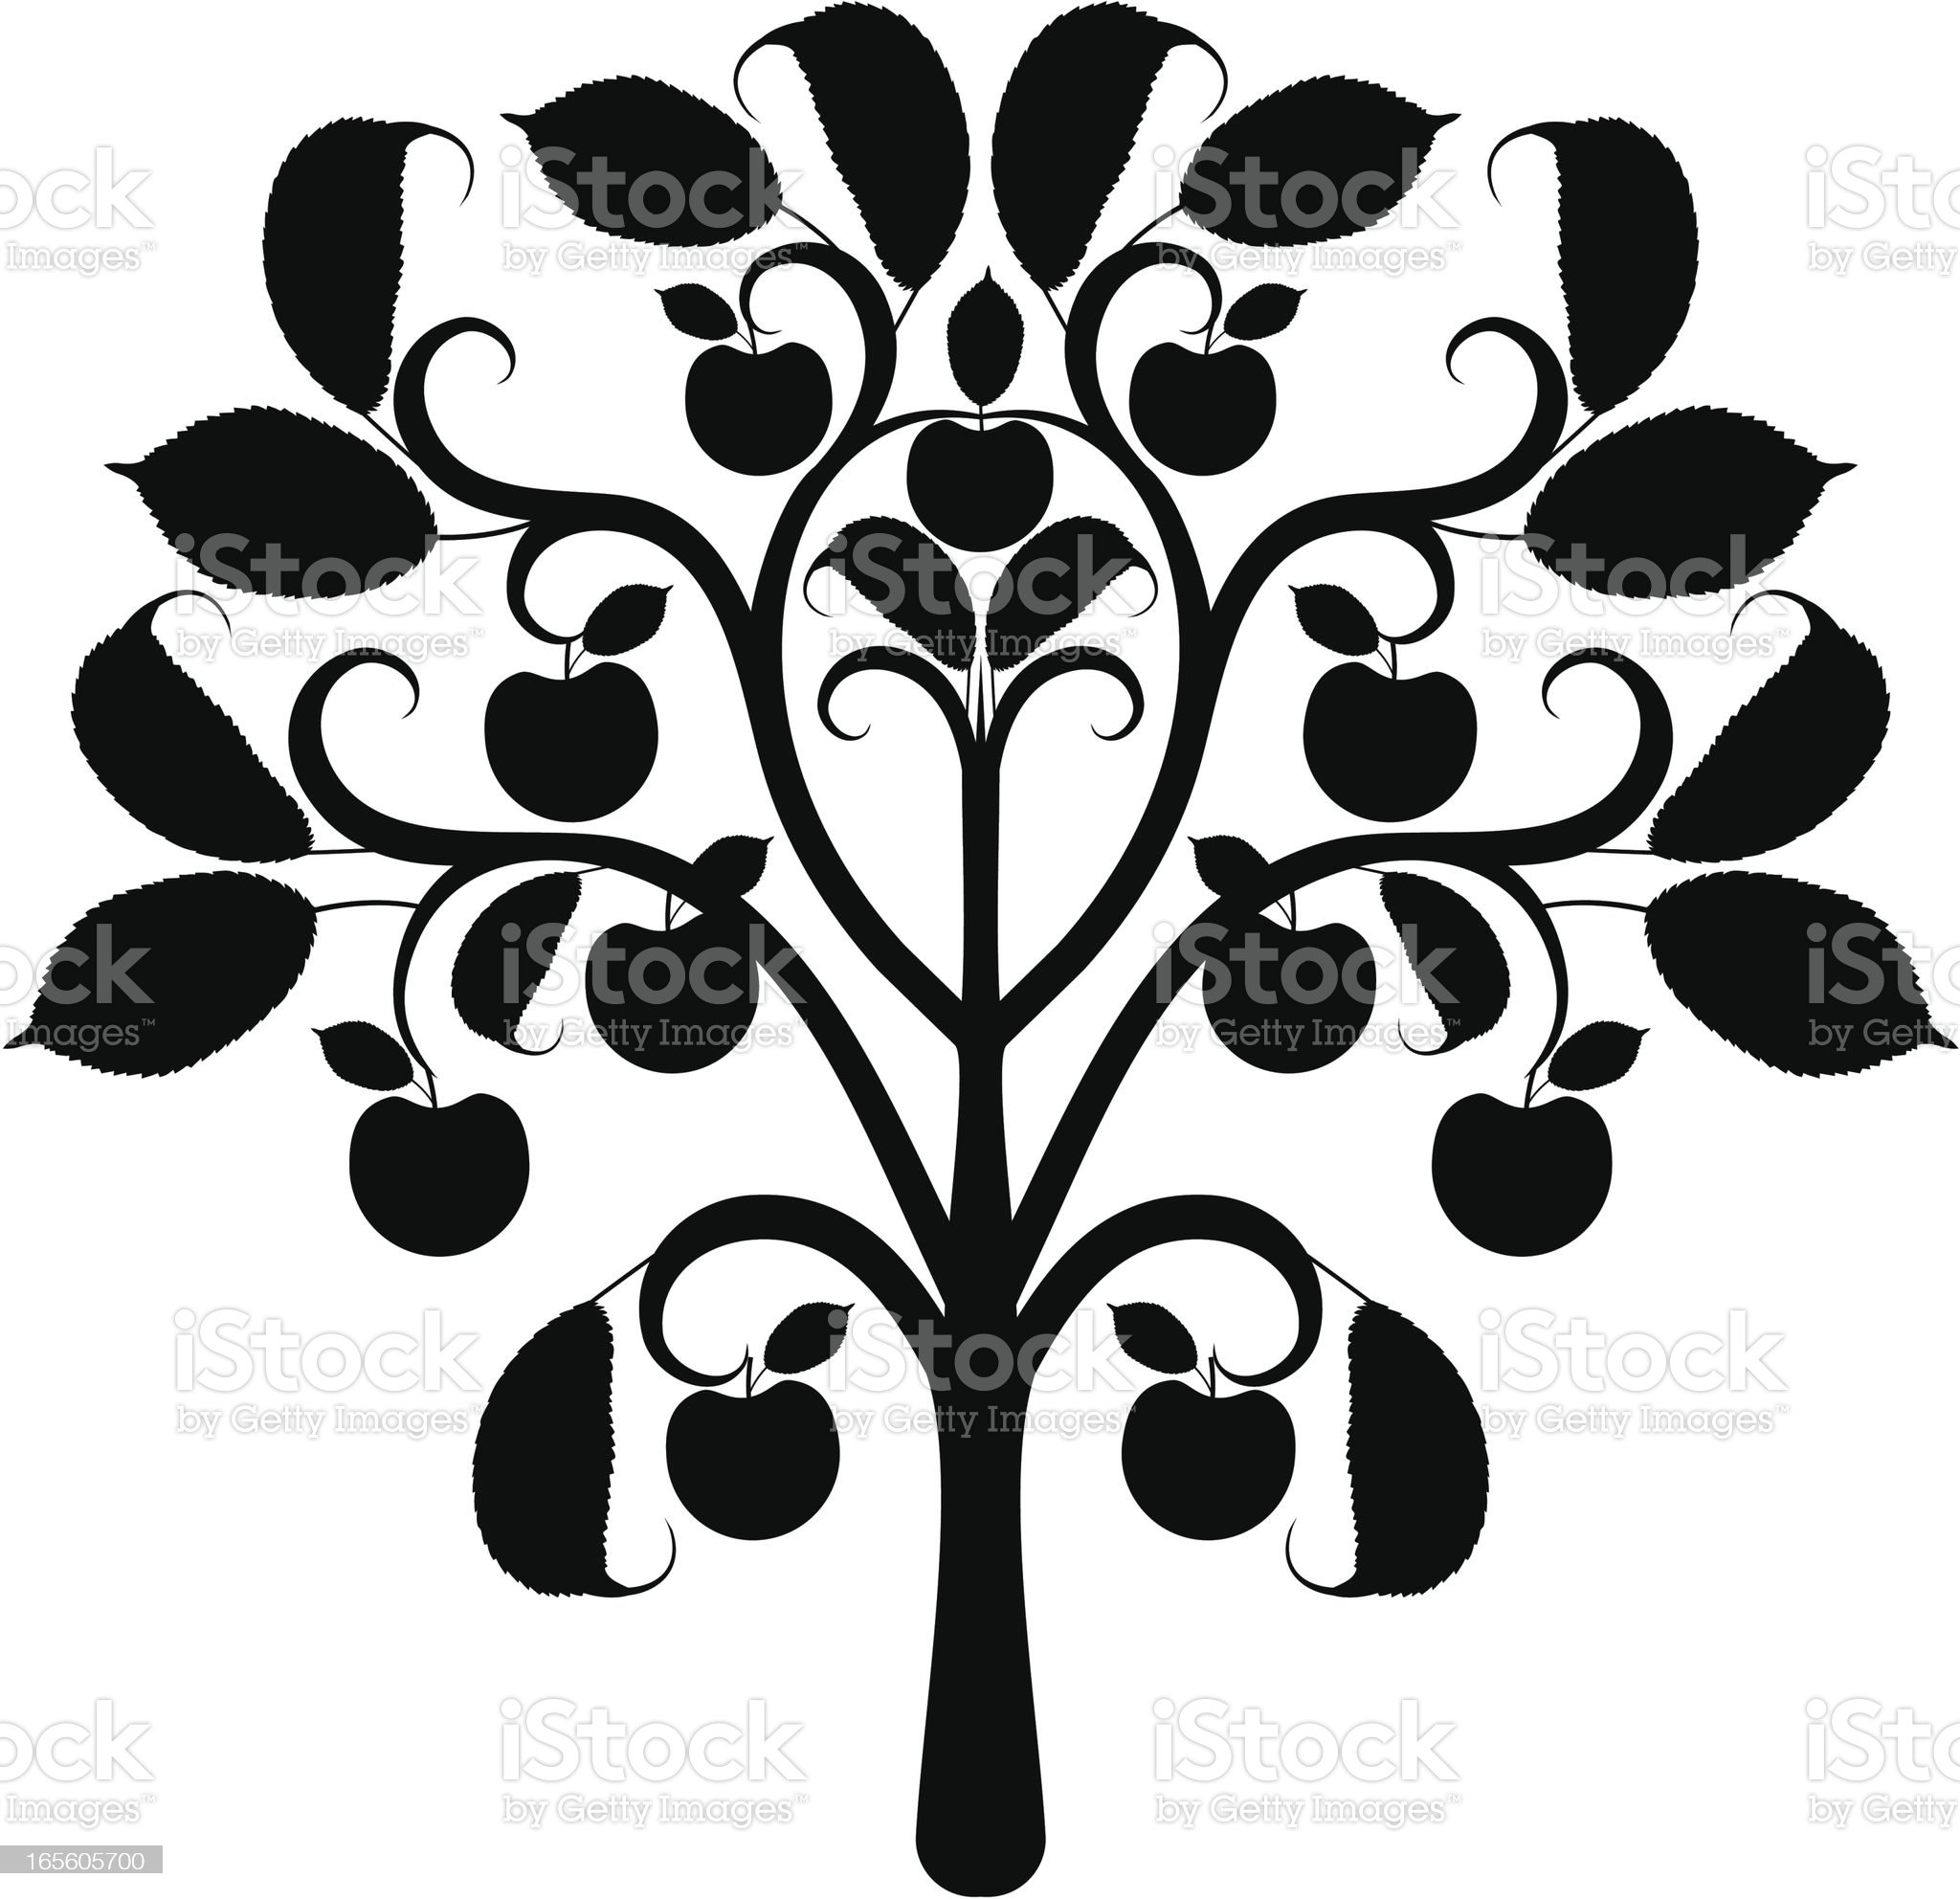 Apple tree silhouette royalty-free stock vector art